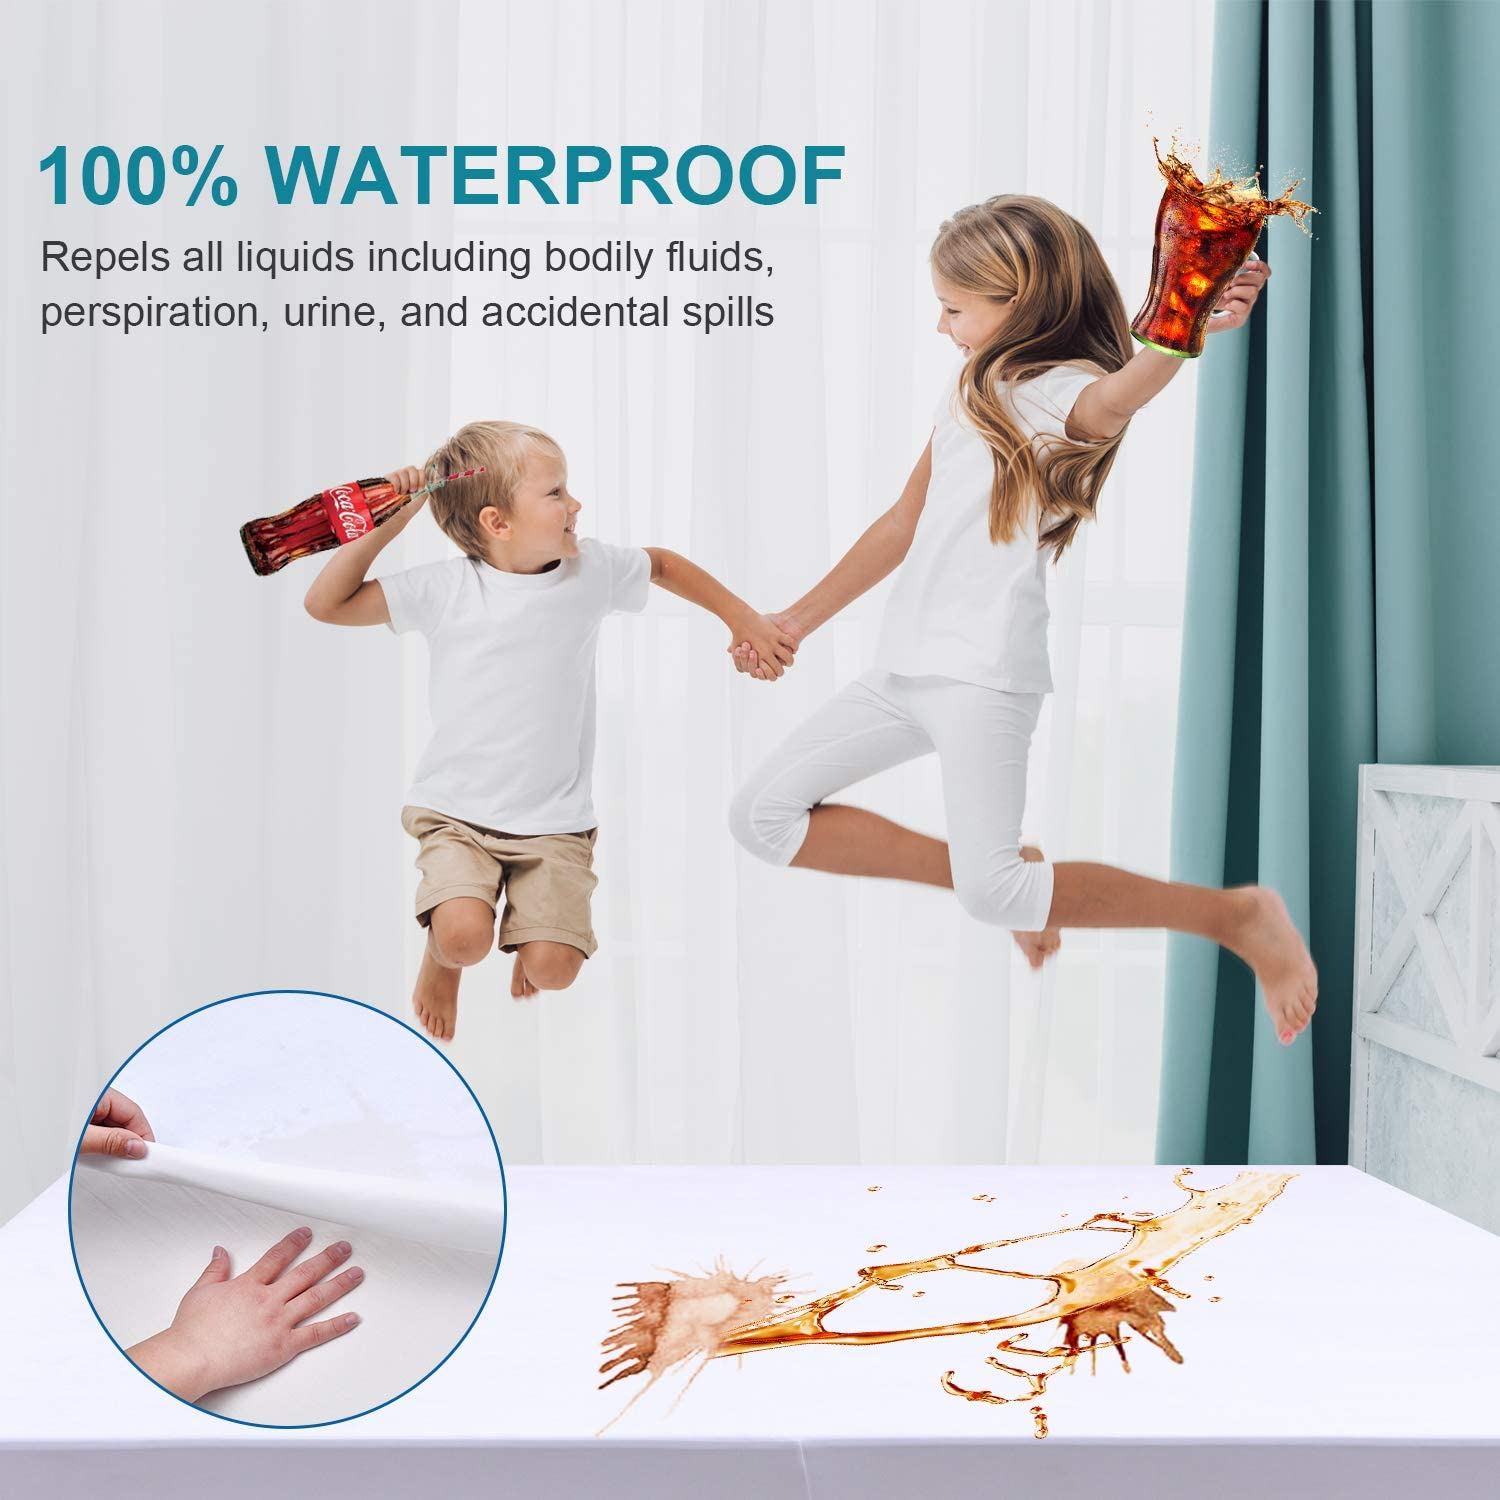 Teemour Cooling Bedbug Mattress Protector Full 100/% Waterproof Mattress Protector Hypoallergenic Mattress Pad Cover Bamboo Fabric Terry Top-Fitted18-21 Deep Pocket